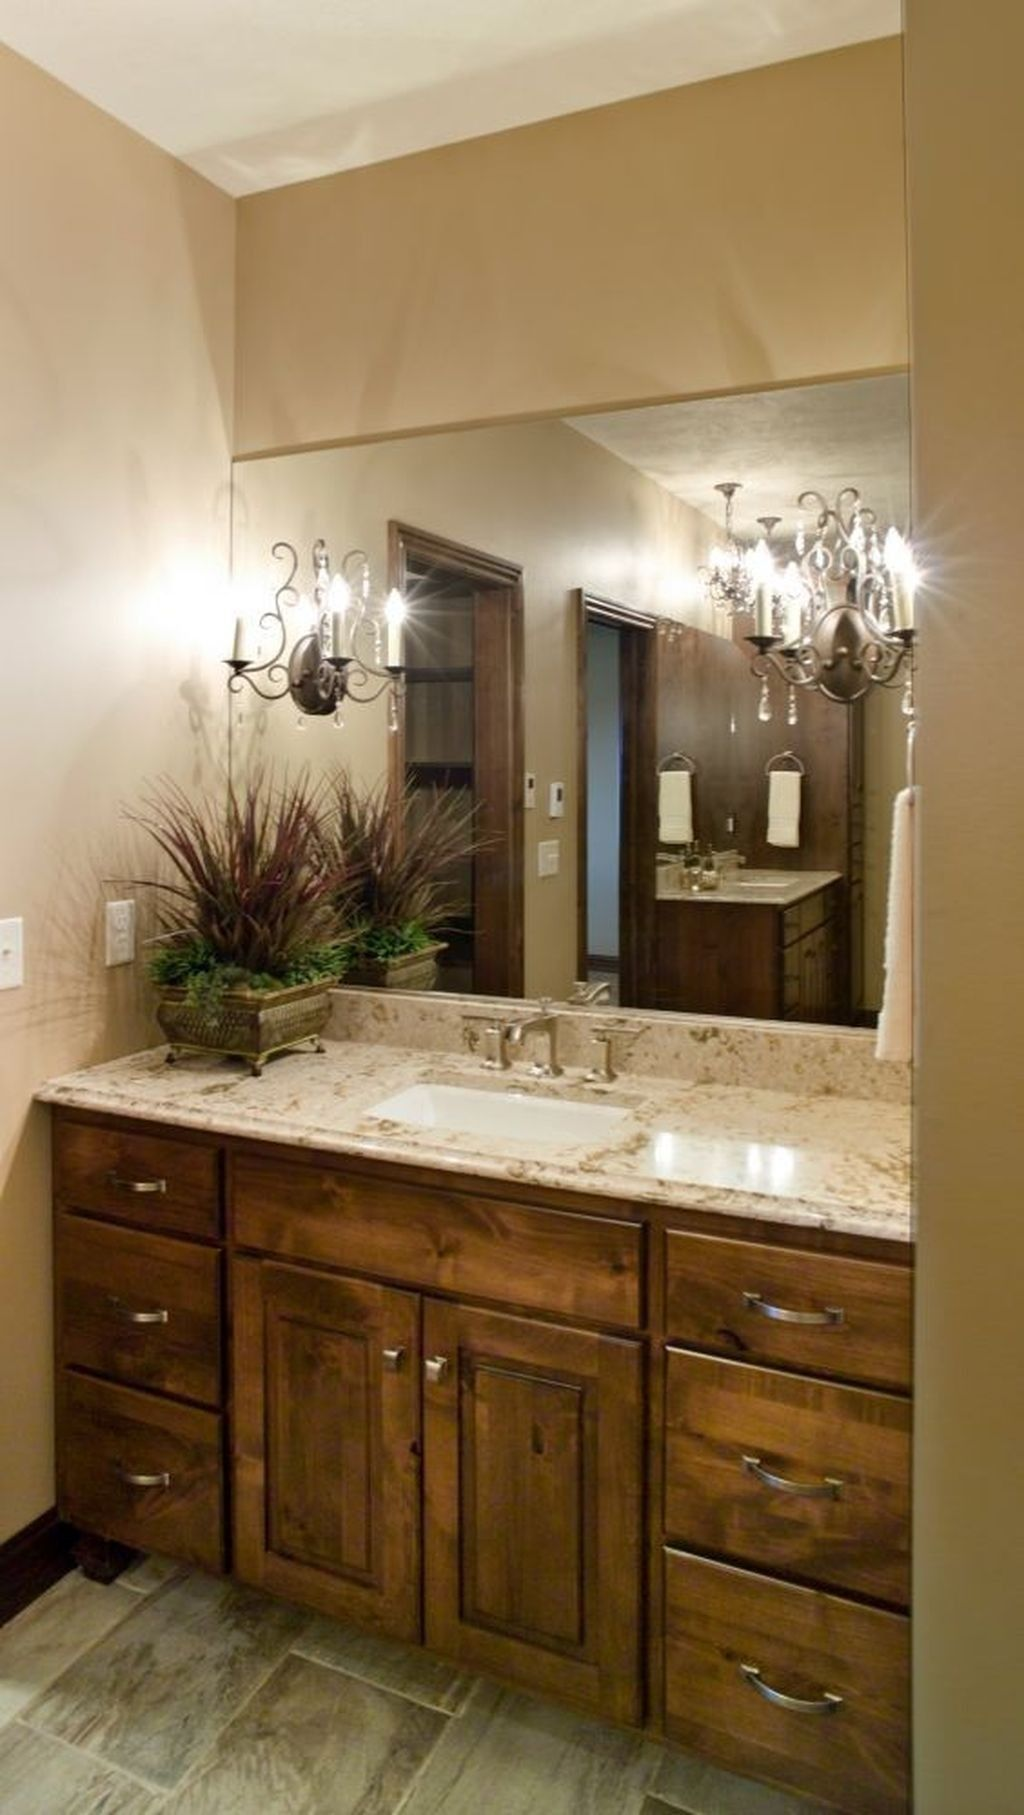 30 Inspiring Bathroom Cabinets Ideas Bathroom Bathroomcabinets